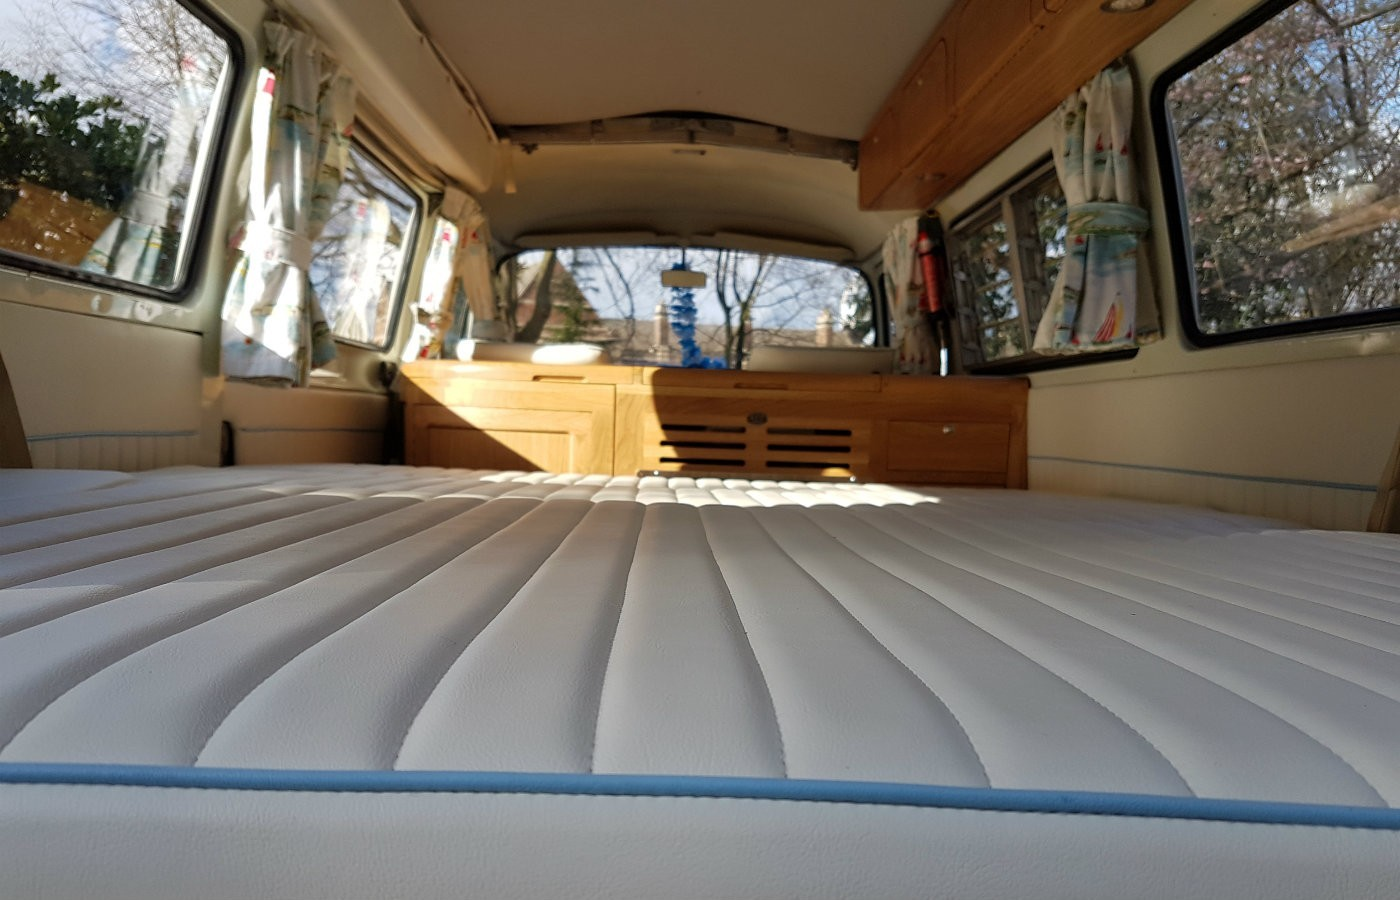 vw campervan bed